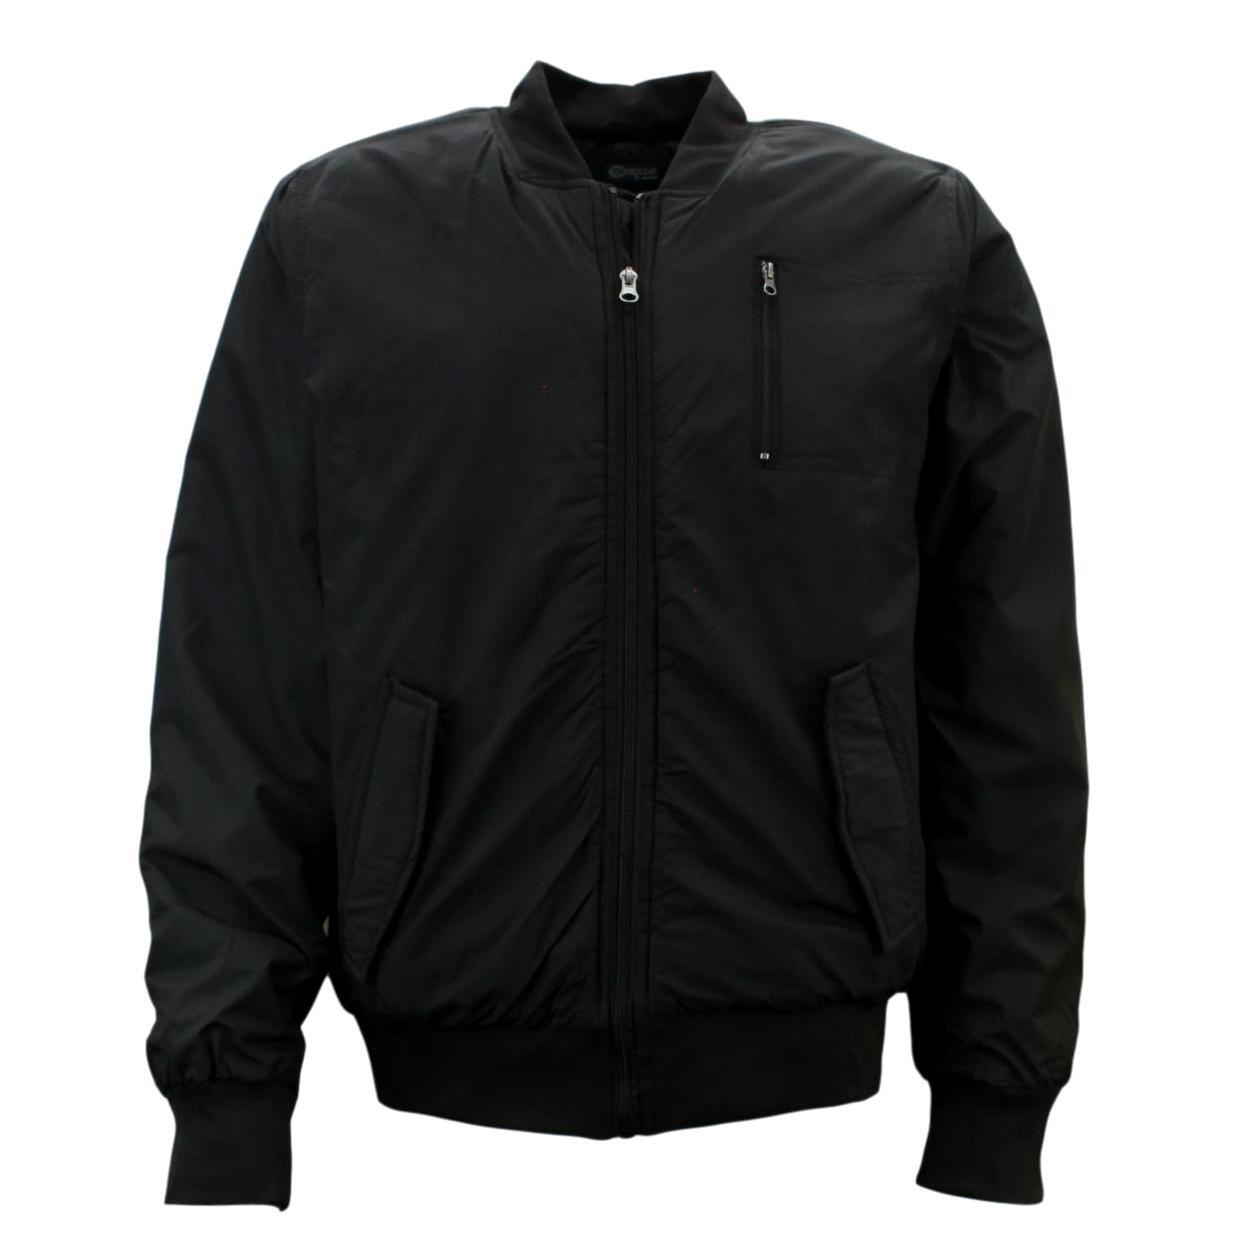 Ozemocean-Mens-Bomber-Jacket-Water-Resistant-Padded-Coat-Winter-Warm-Quilted thumbnail 3